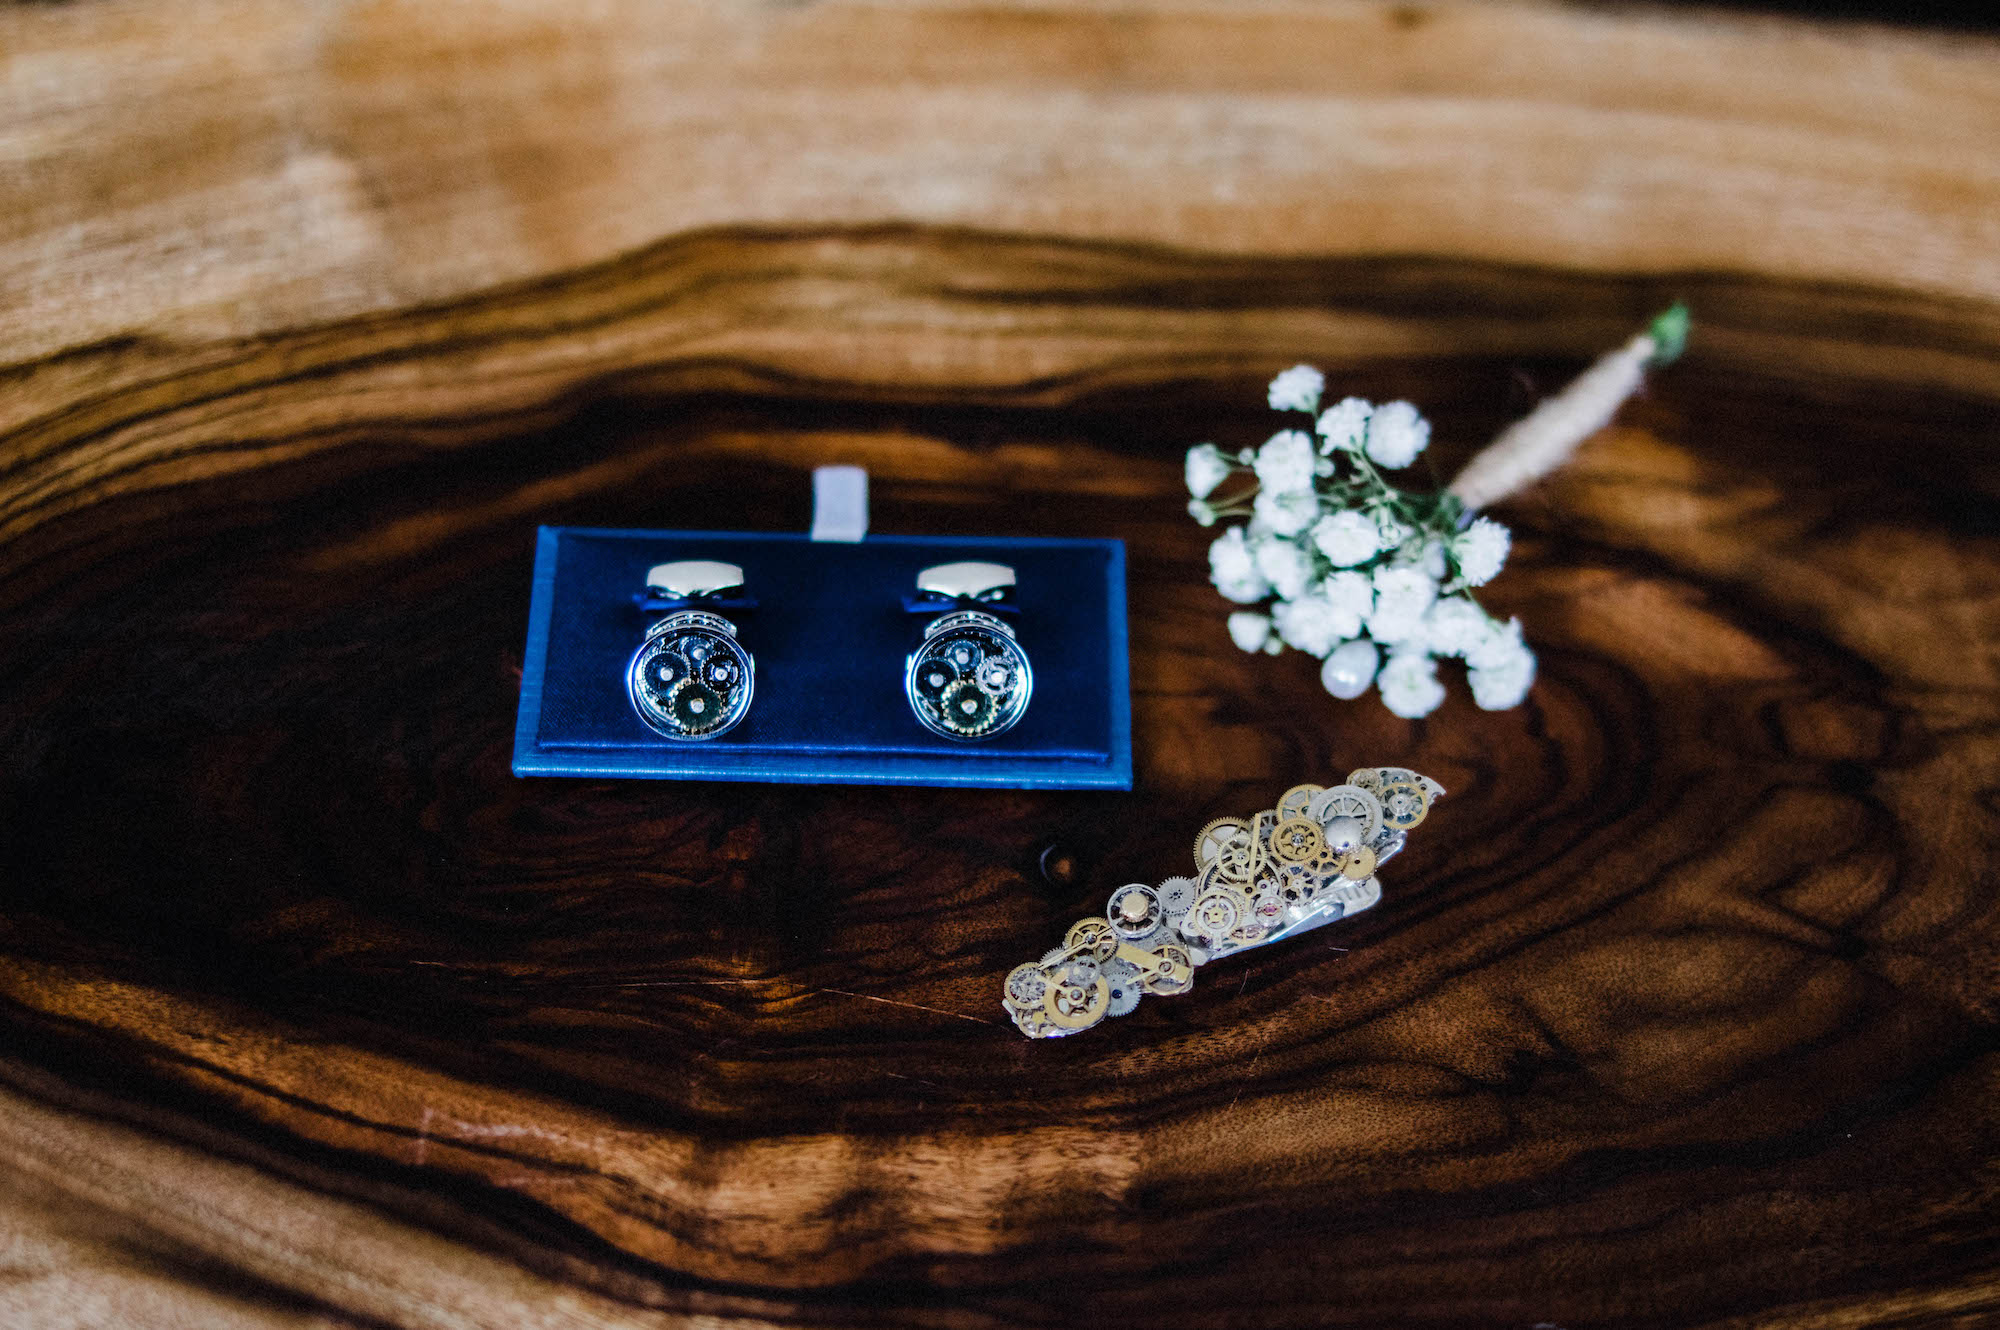 An image of the groom's preparation details, including a tie pin, button hole and cuff links.